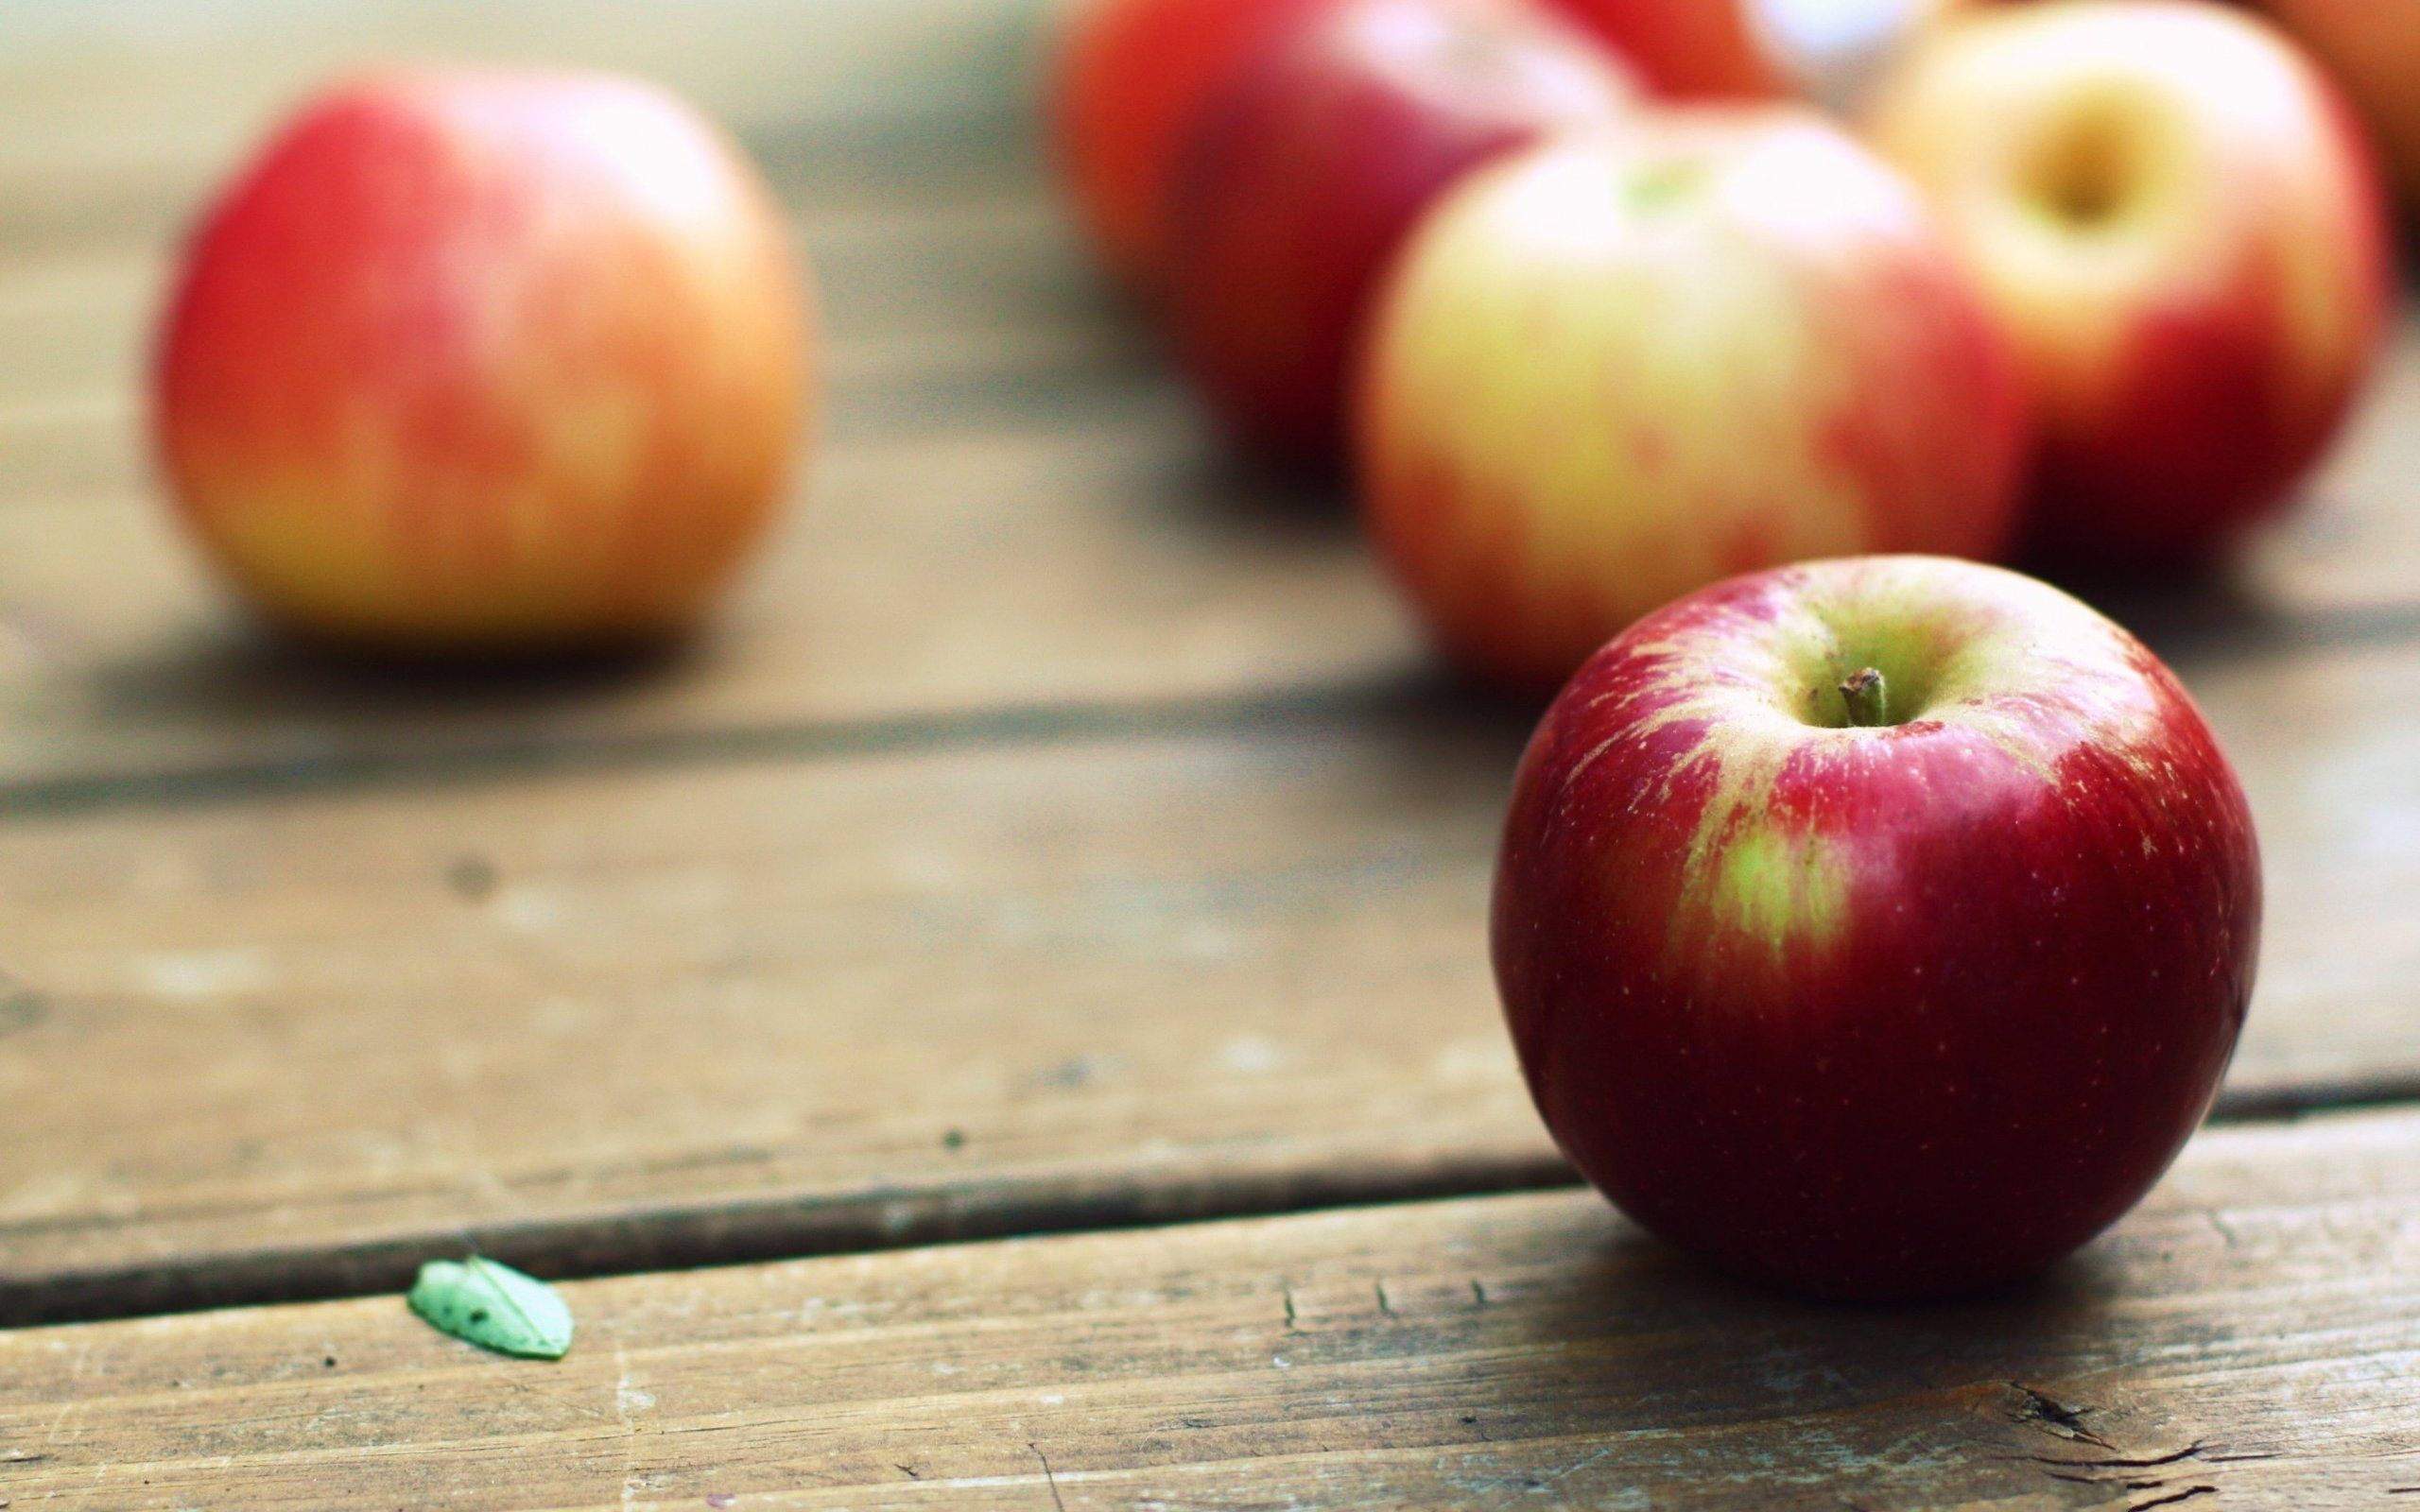 Res: 2560x1600, Image: apples to apples wallpapers and stock photos. Â«